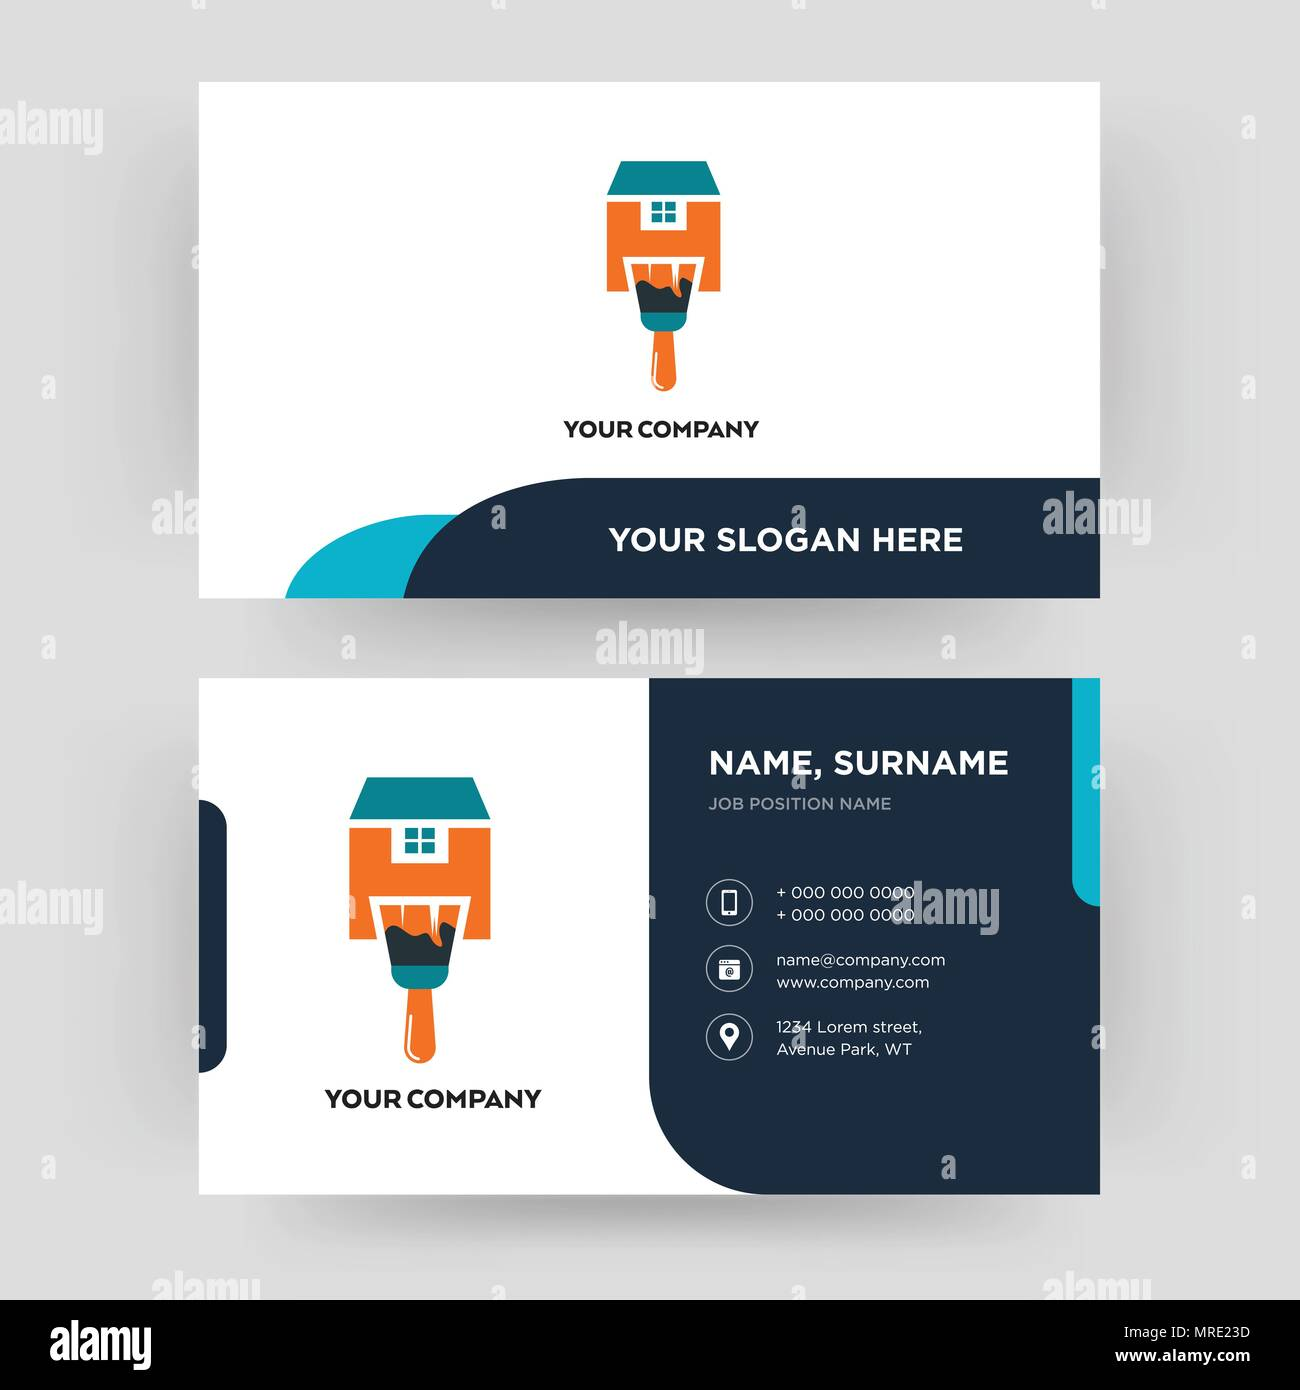 Home paint business card design template visiting for your company home paint business card design template visiting for your company modern creative and clean identity card vector accmission Gallery